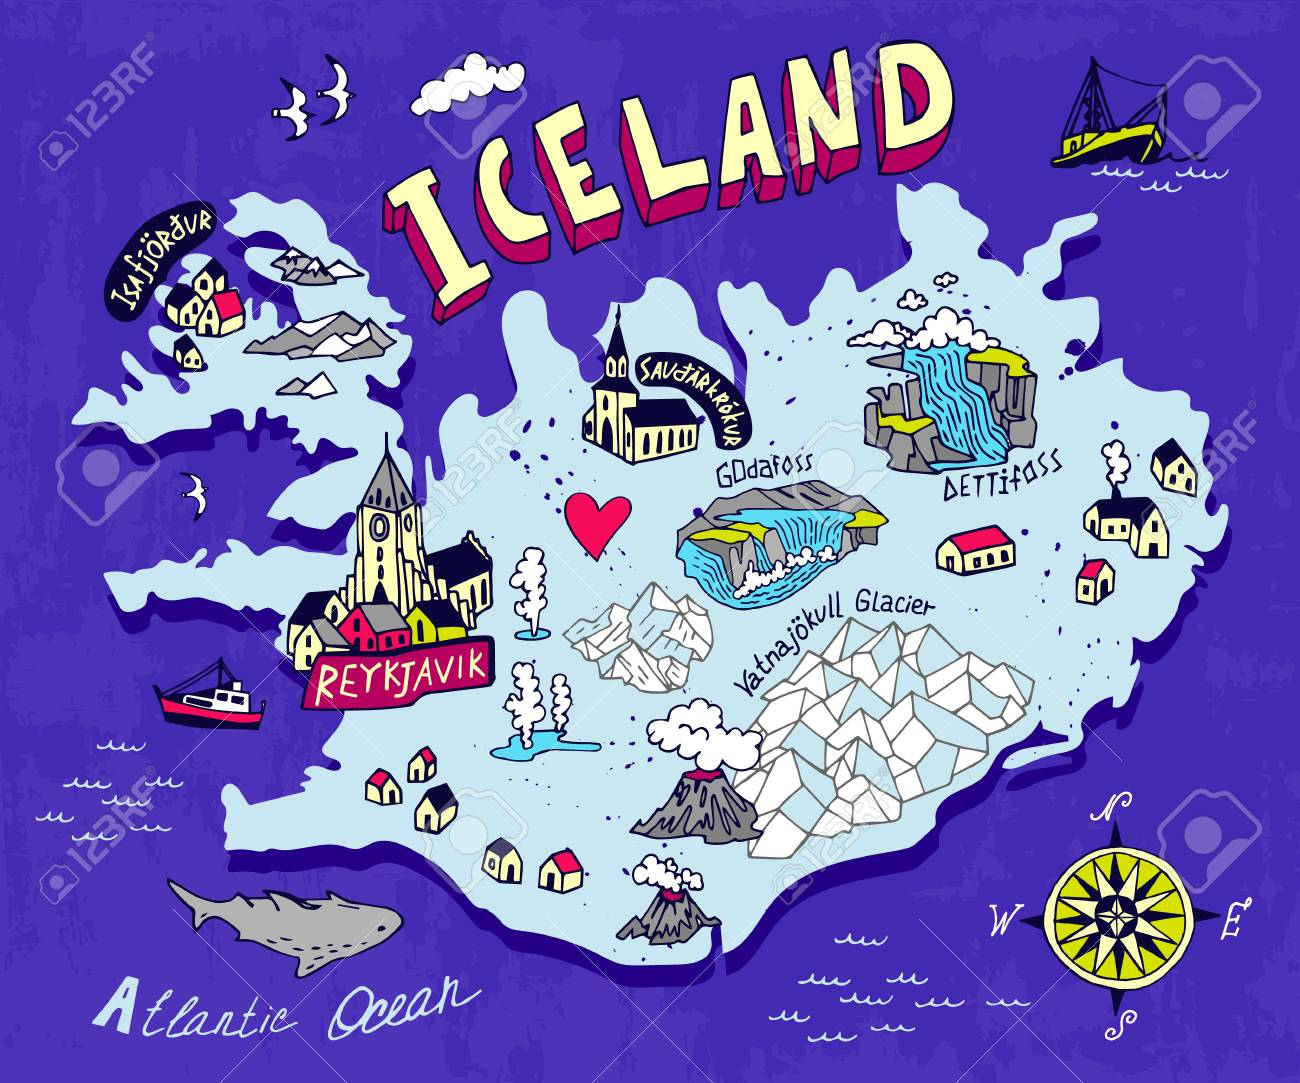 Illustrated map of Iceland. Travel and attractions on map of gibraltar attractions, map of nassau bahamas attractions, map of ireland attractions, map of germany attractions, map of italy attractions, map of macau attractions, map of oslo attractions, map of sicily attractions, map of egypt attractions, map of dubai attractions, map of mexico attractions, map of helsinki attractions, map of west coast attractions, map of france attractions, map of brooklyn attractions, map of grand cayman islands attractions, map of hong kong attractions, map of puerto rico attractions, map of western united states attractions, map of japan attractions,